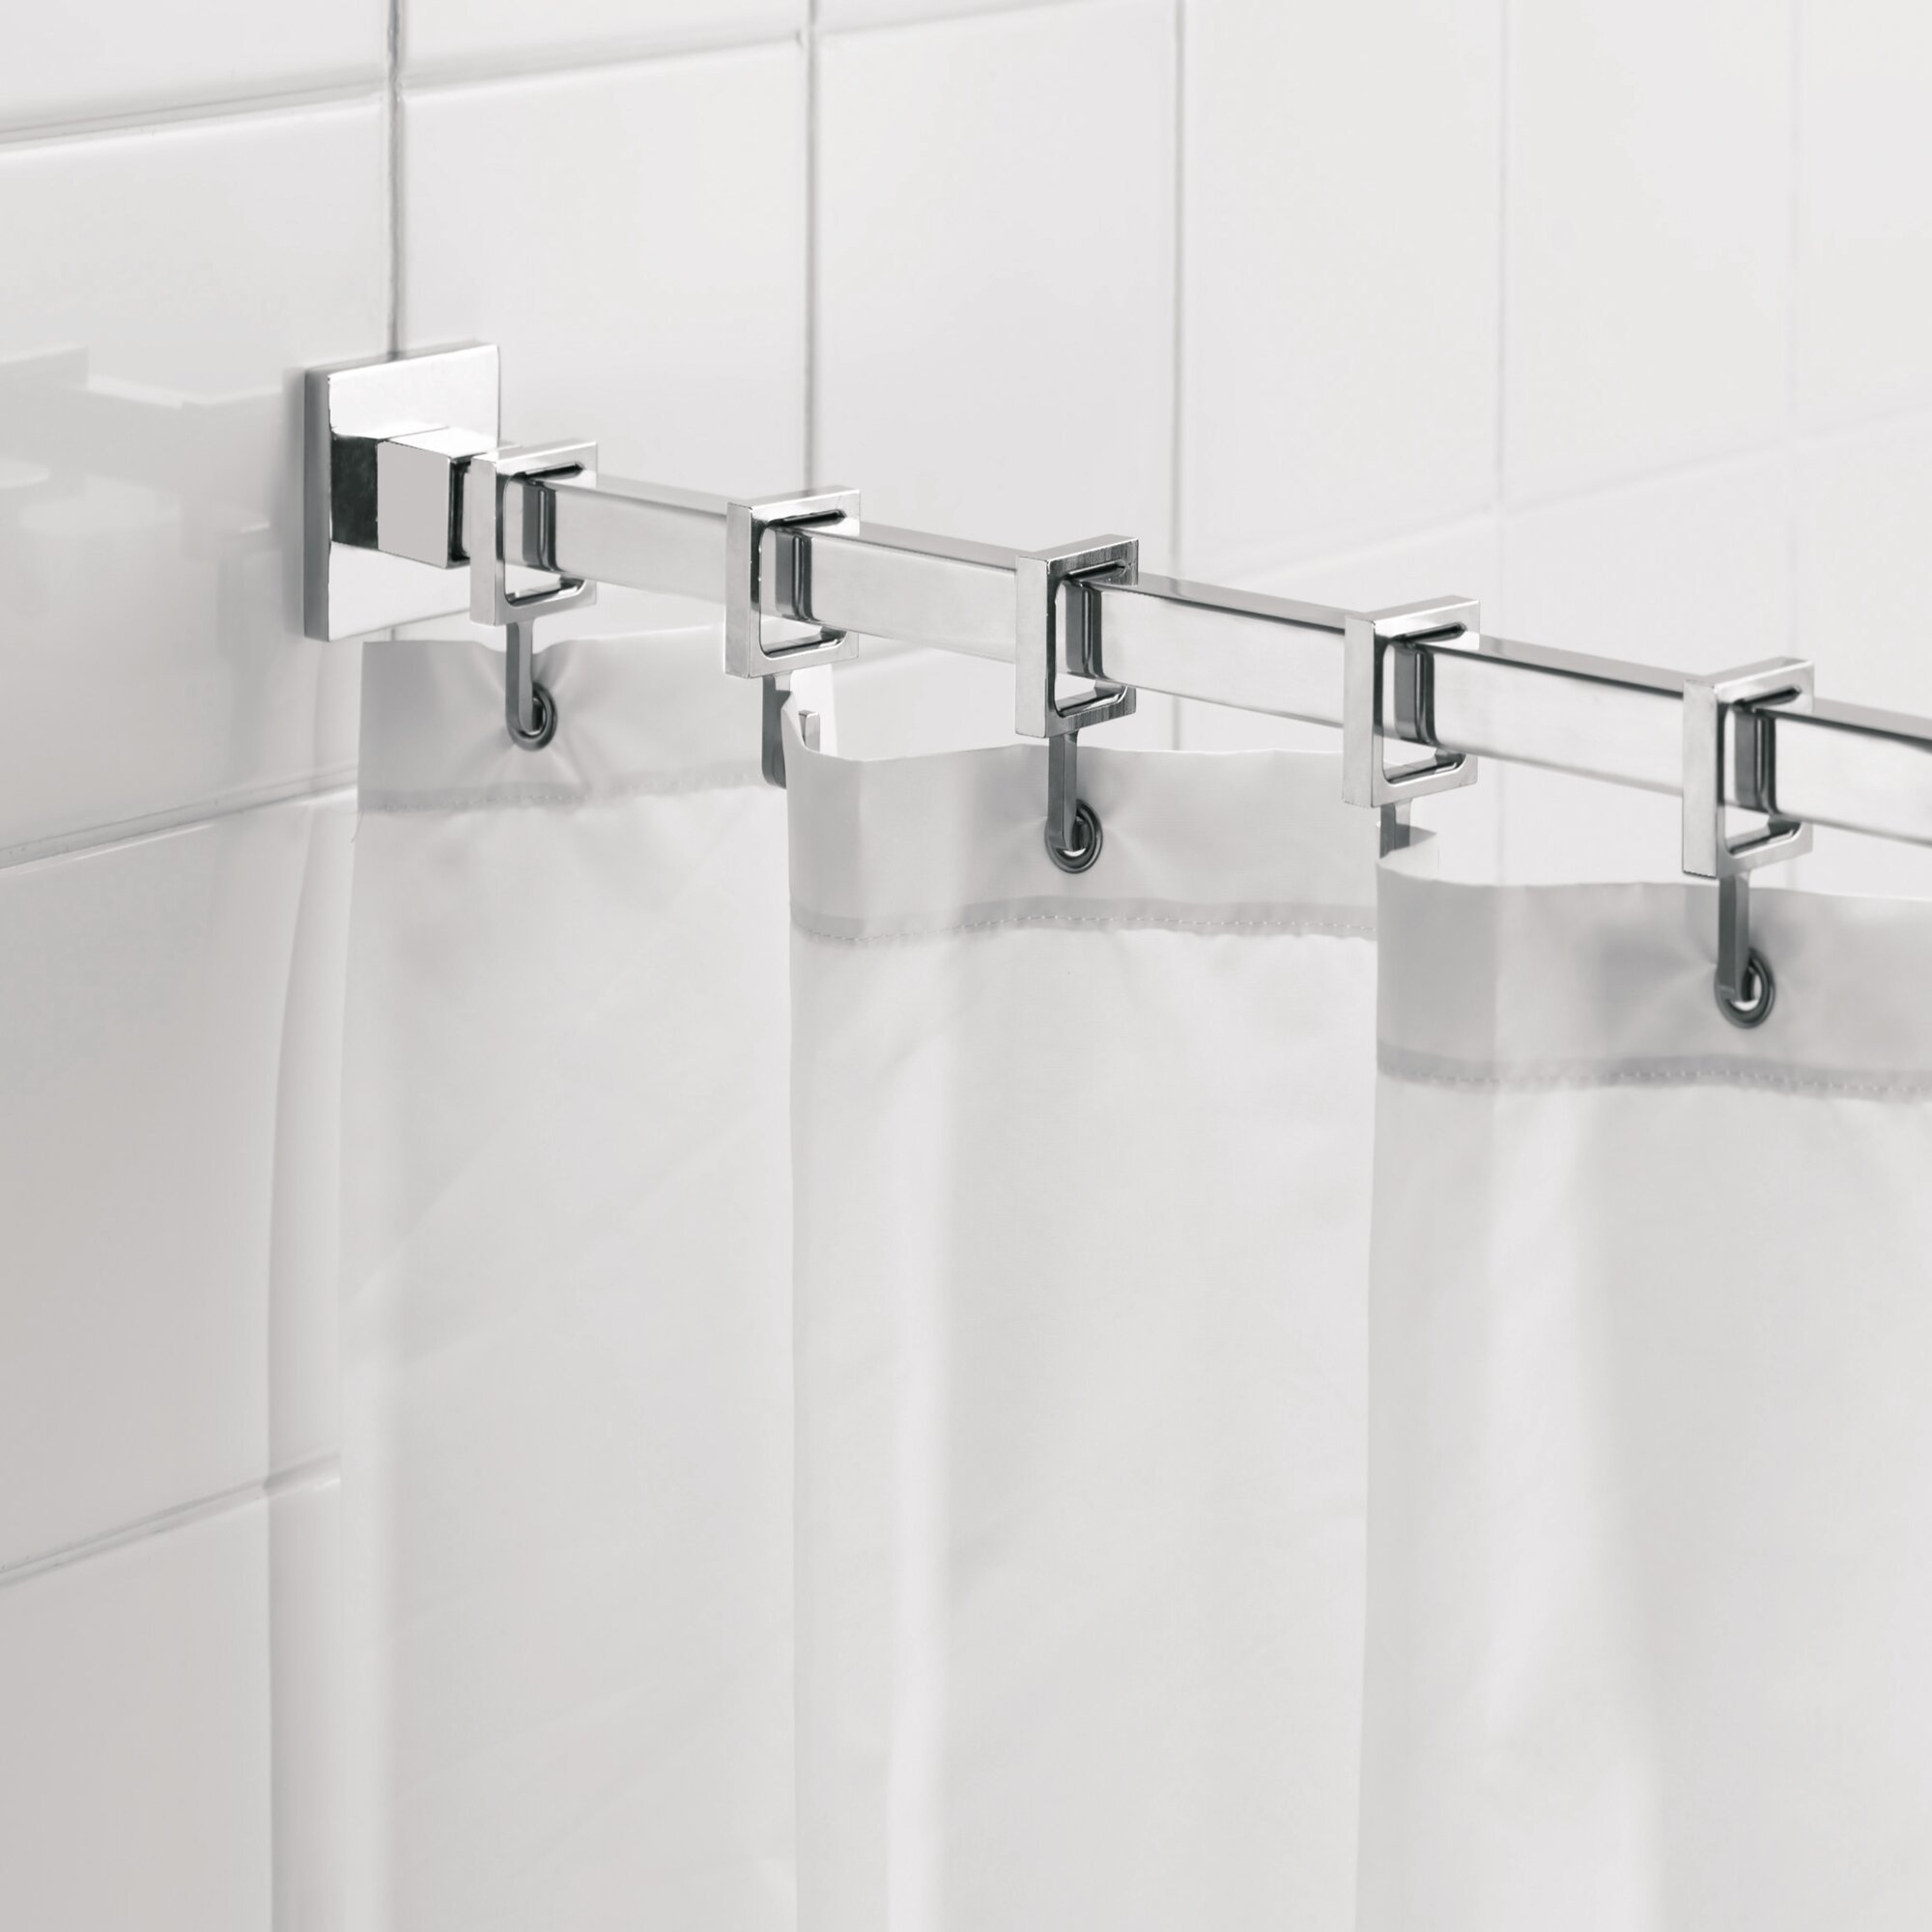 Details About Croydex Luxury 9825 Adjustable Straight Fixed Shower Curtain Rod Hook Set